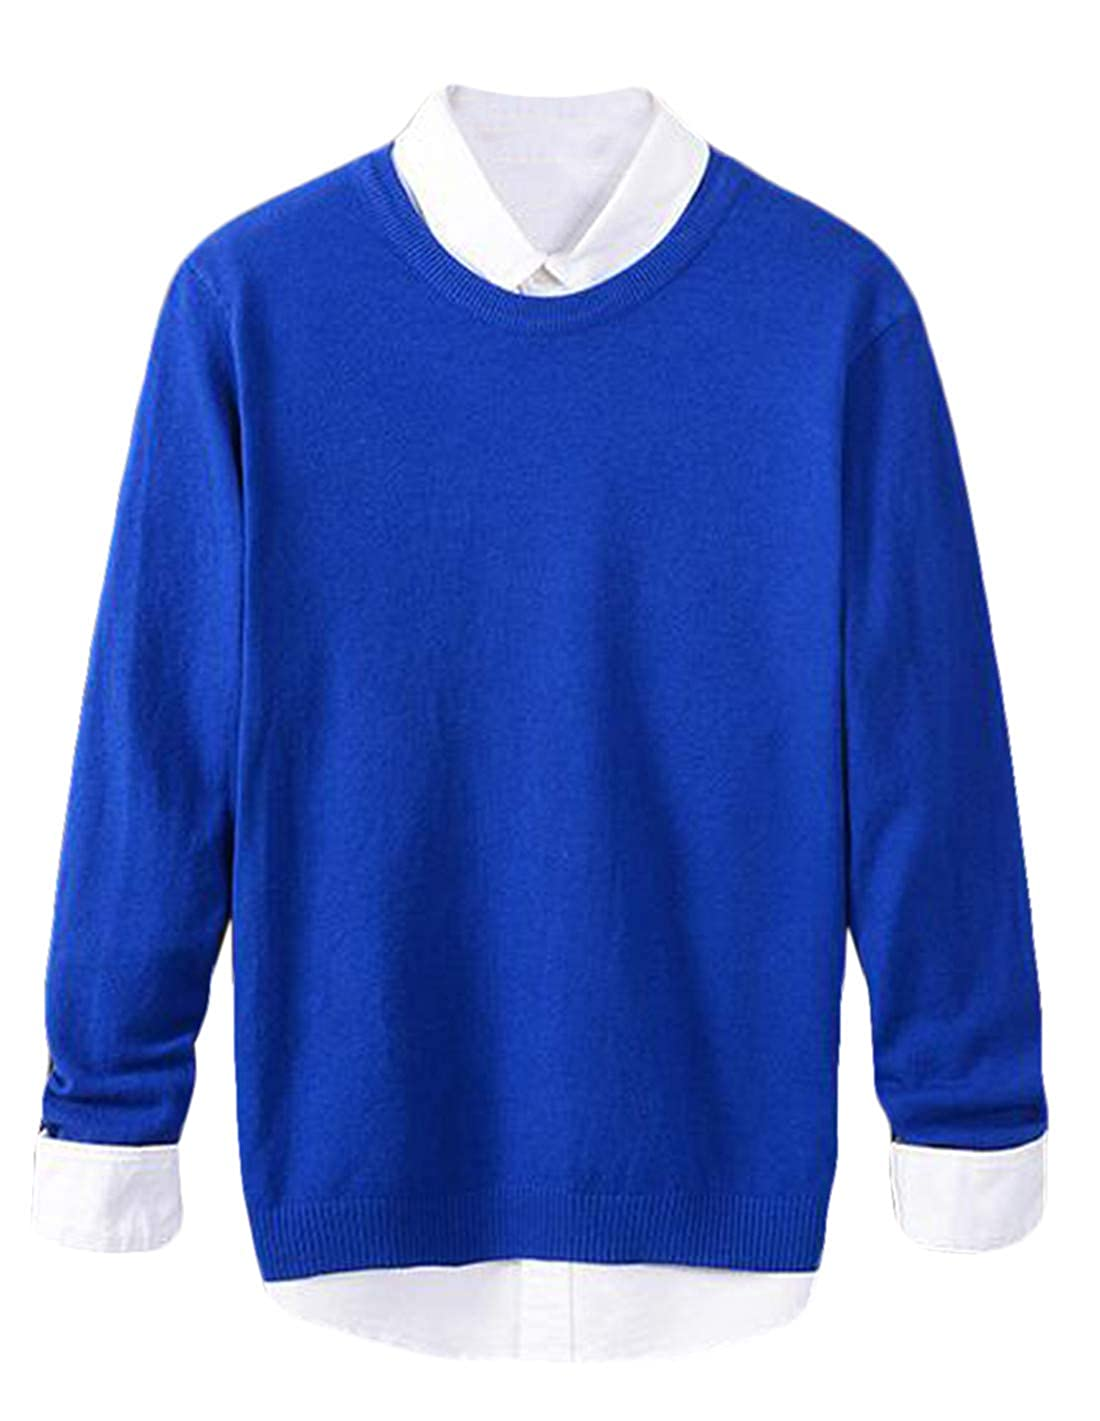 Nanquan Men Slim Fit Crewneck Long Sleeve Pullover Knitted Sweater Tops